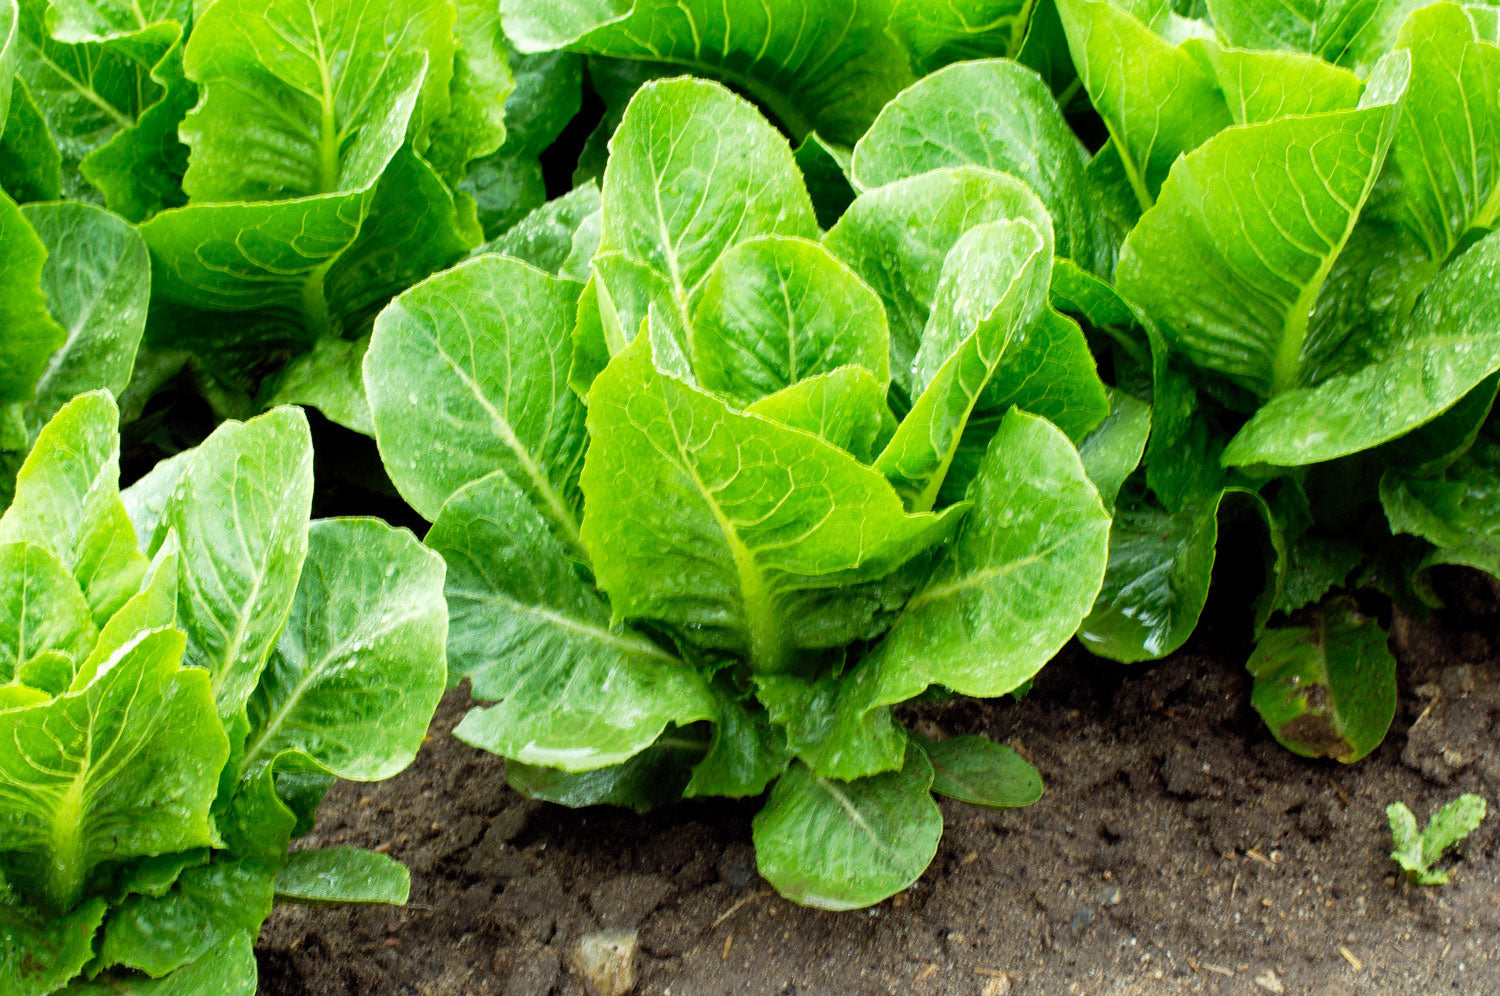 Lettuce in your Garden? Why not?